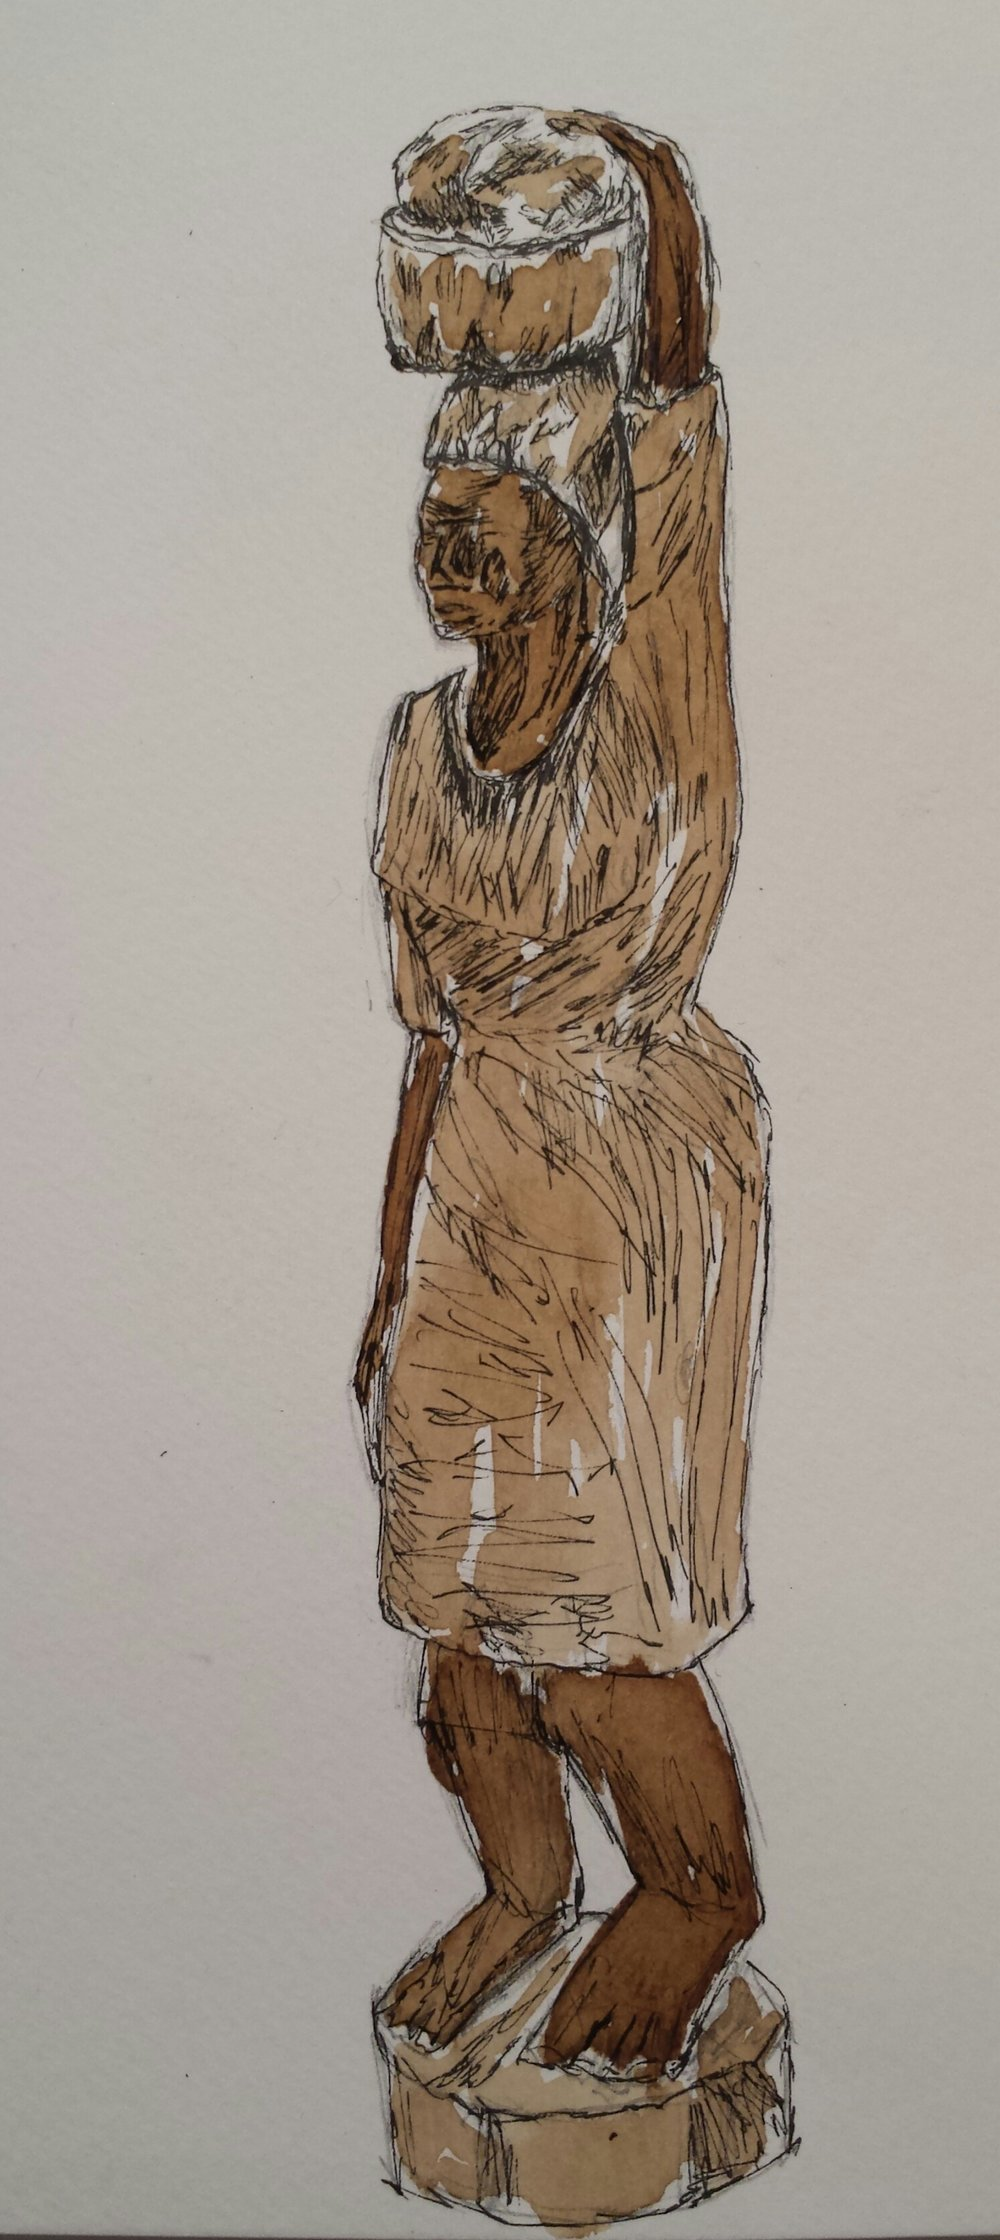 Haitian Sculpture, Pen and walnut ink, 2016.